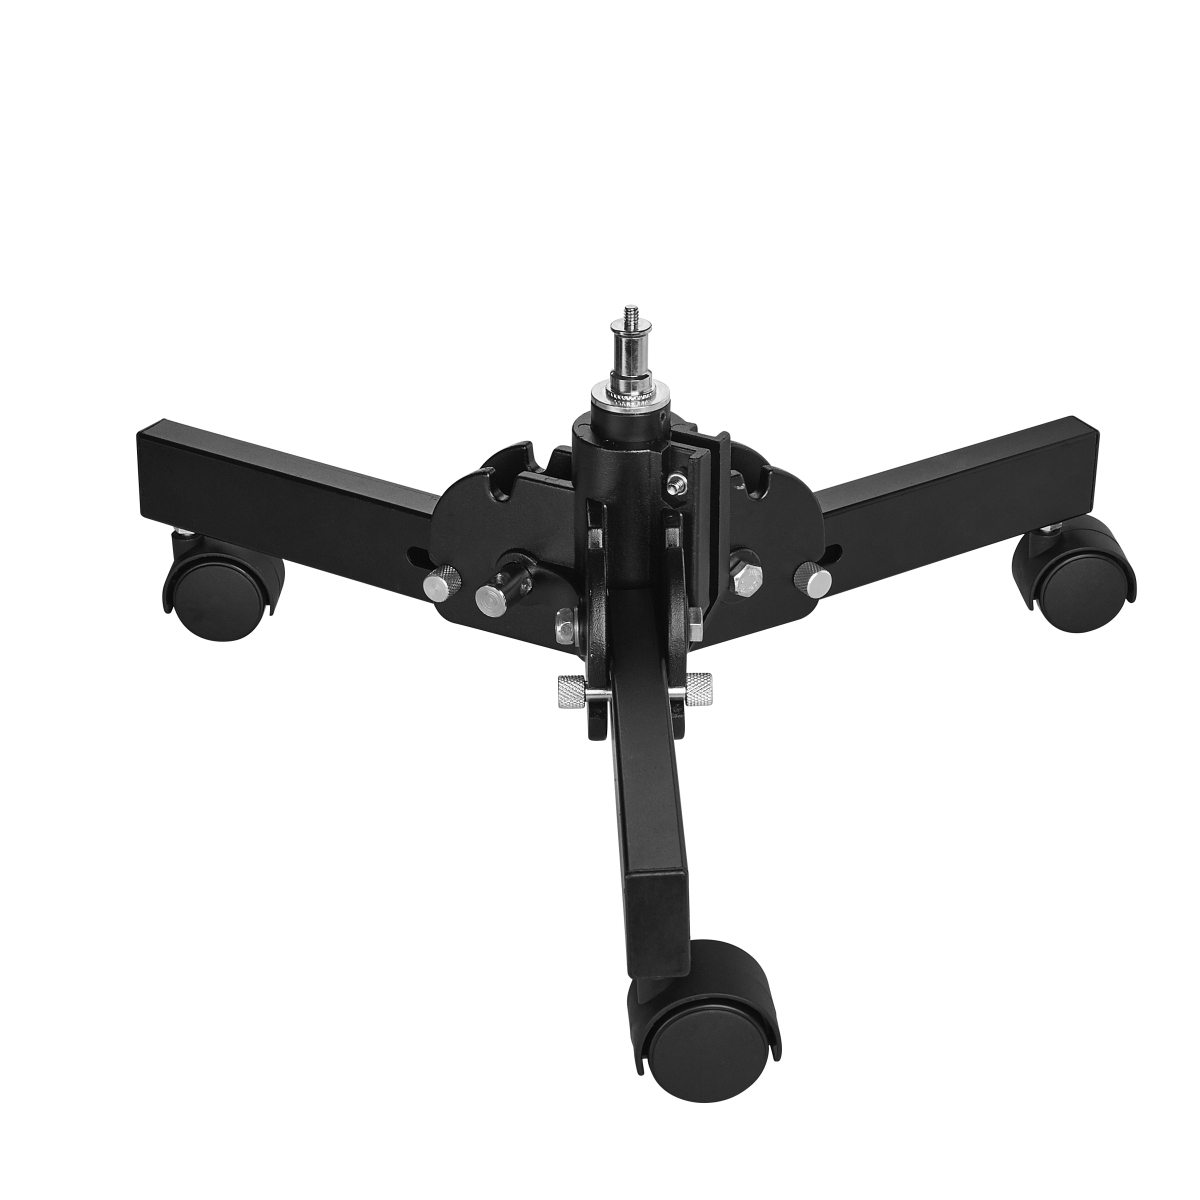 Walimex pro Movable Ground Stand compact 15cm